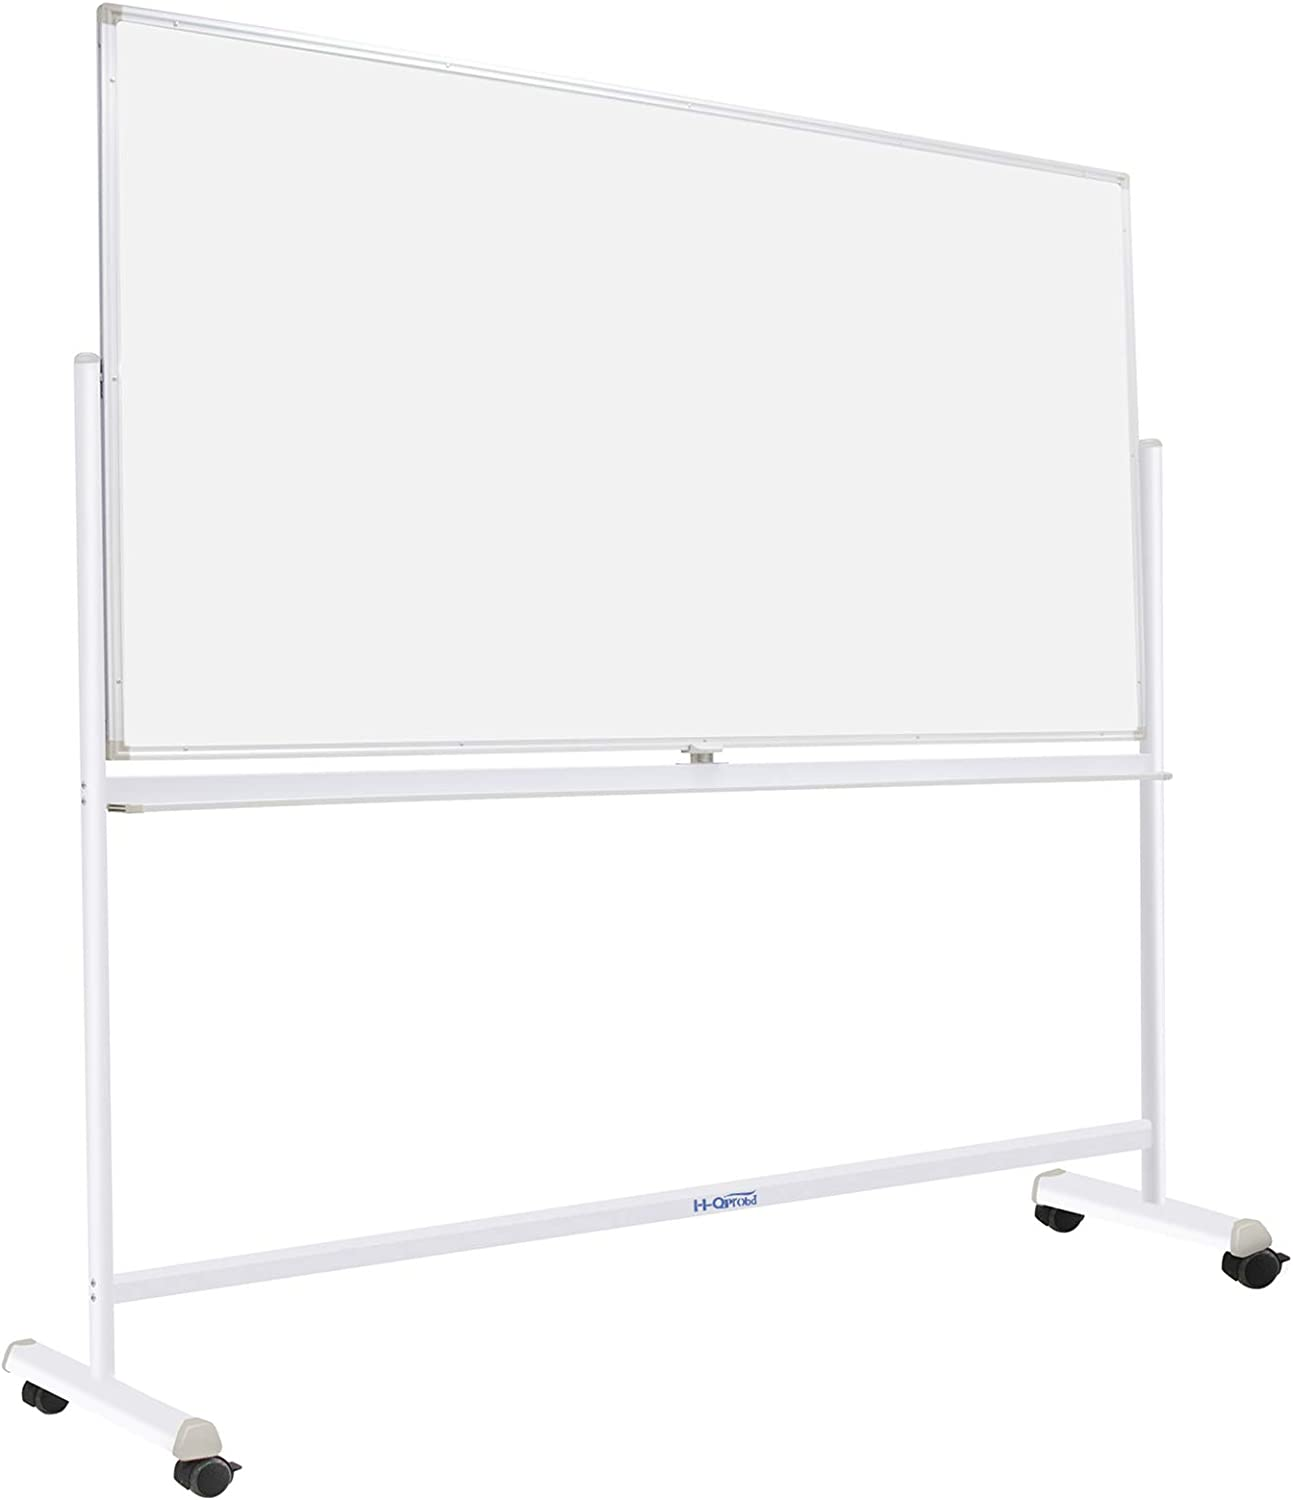 """Dry Erase Board with Sturdy Stand, Double-Sided 72""""x40"""" Mobile Magnetic Whiteboard on Wheels for Kids & Adult - 360° Rotating Comercial Rolling White Boards for Office, Home & School"""